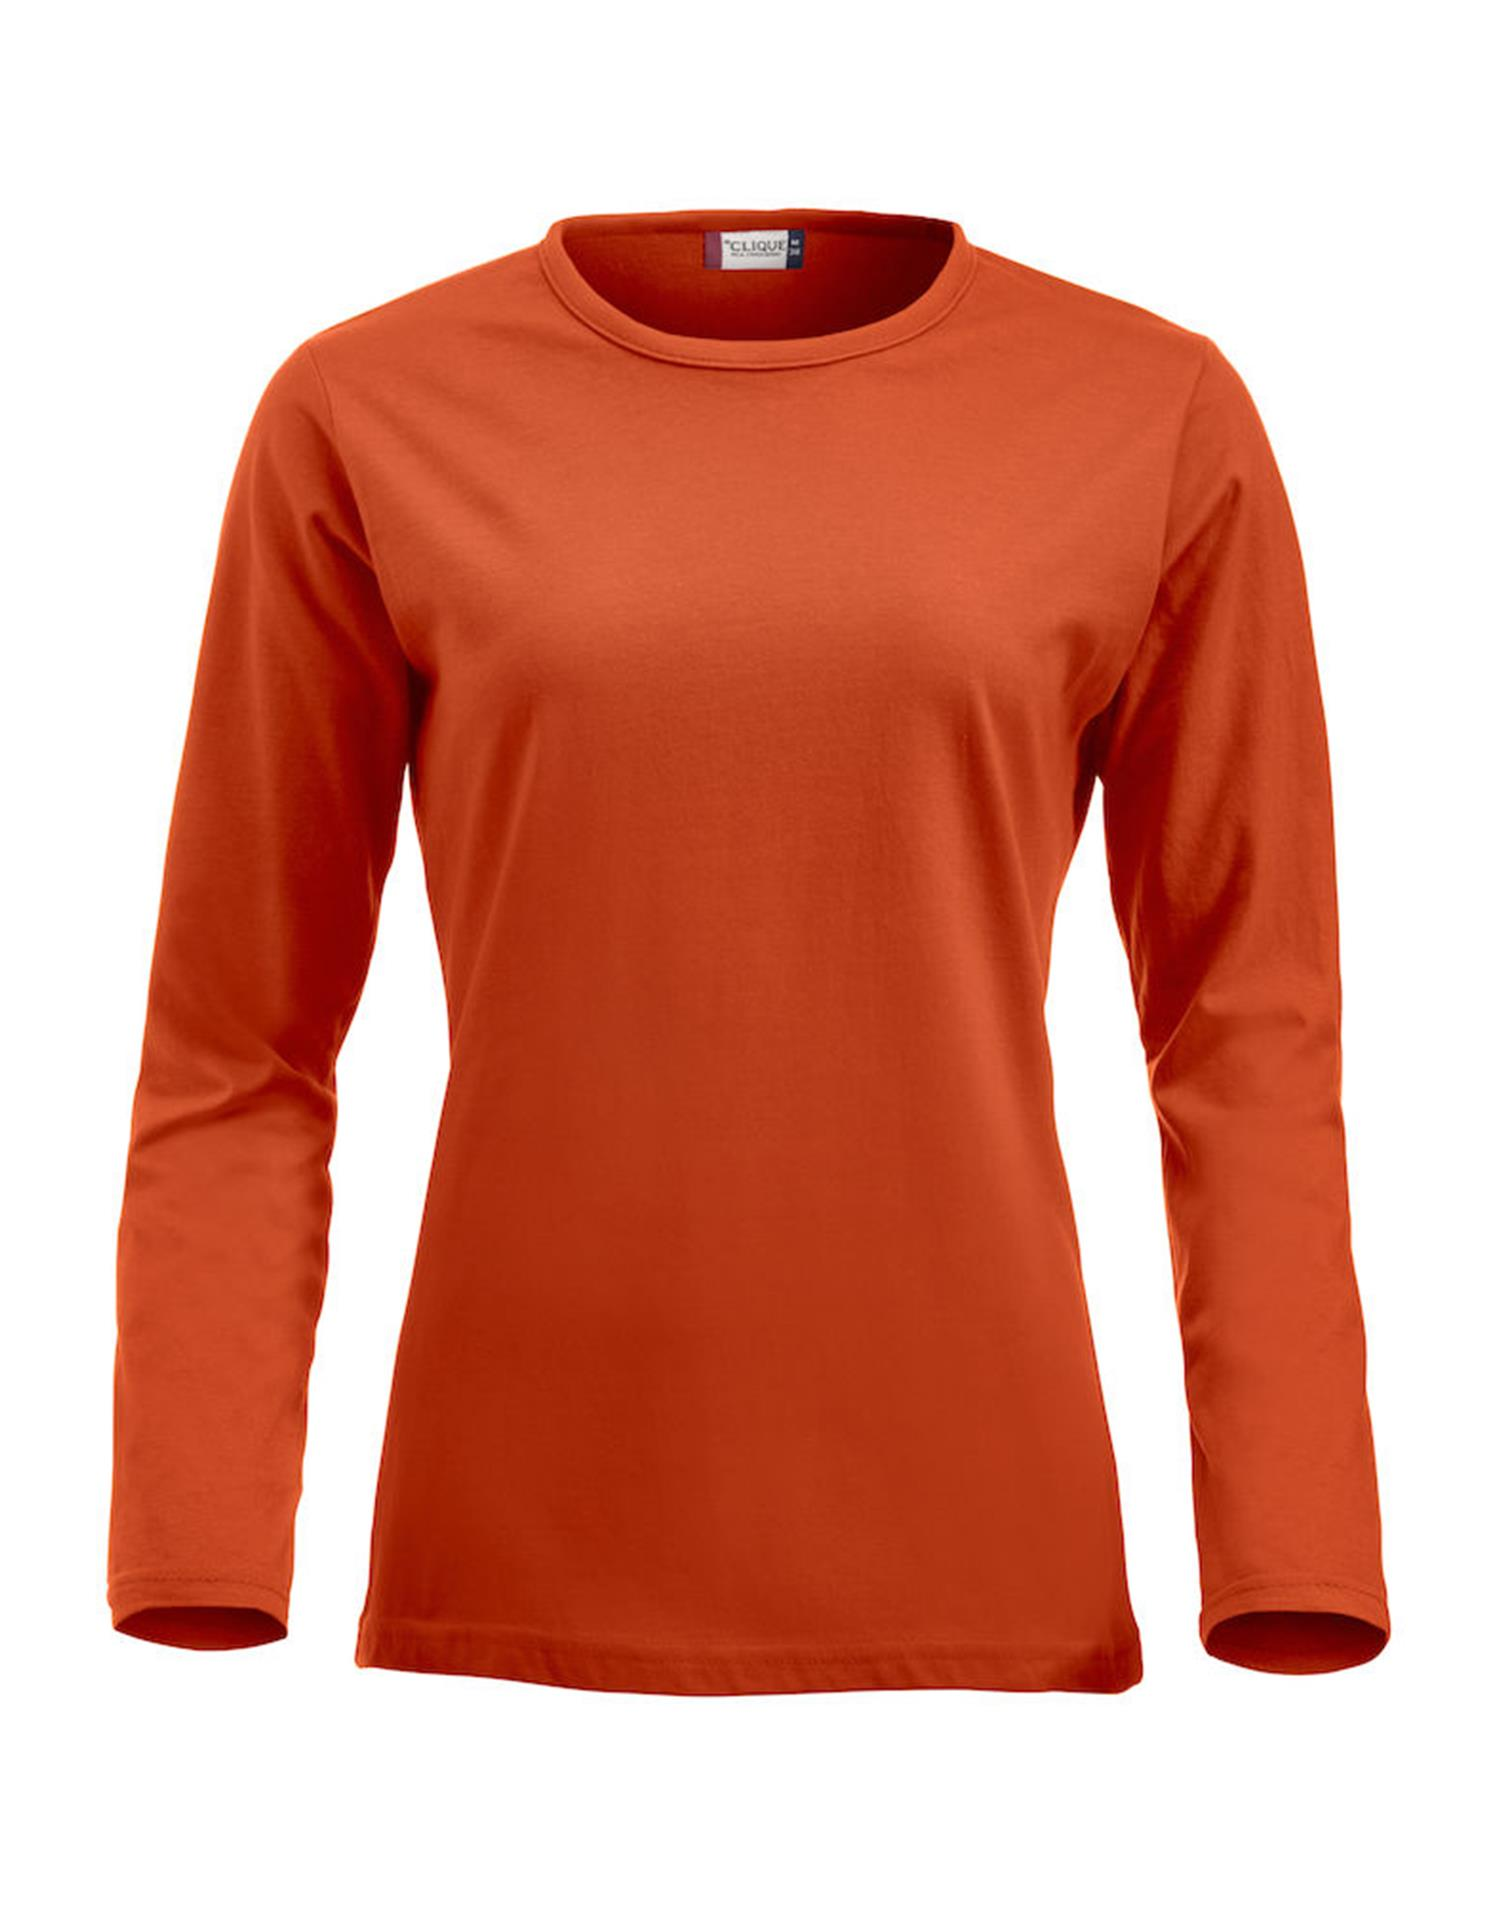 NewWave Fashion-T Ladies Long Sleeve (M - ARANCIONE)